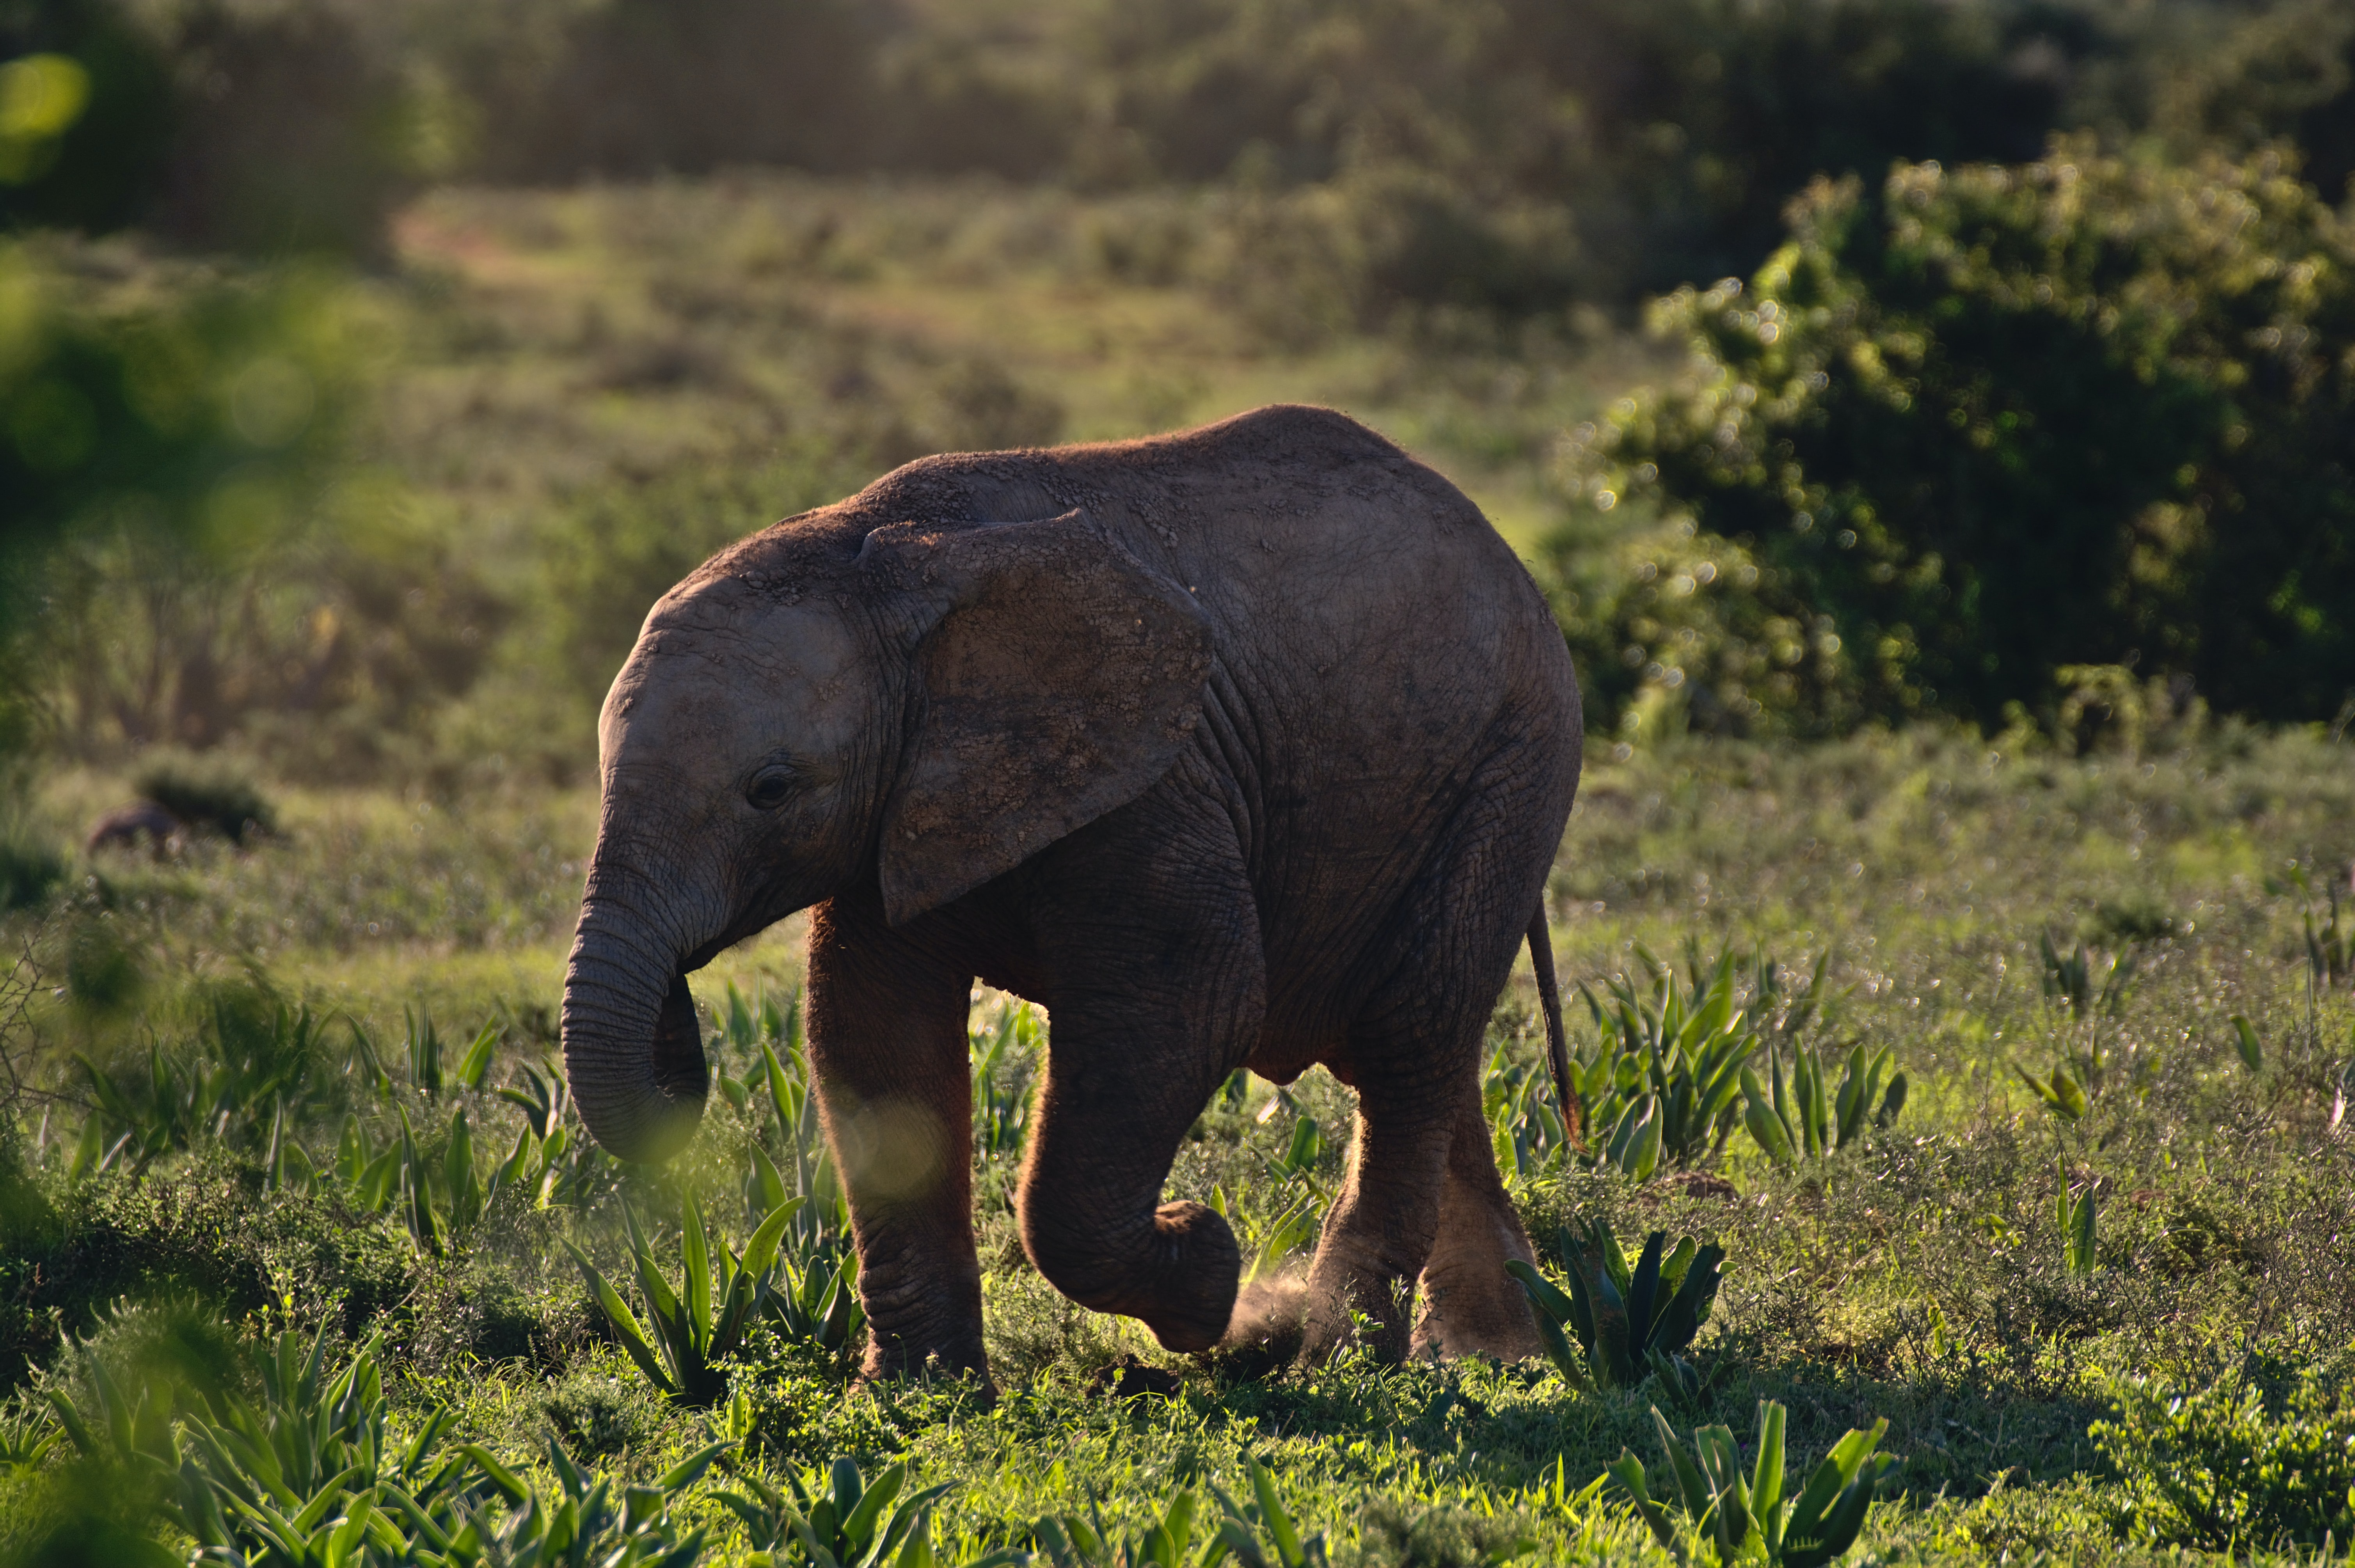 brown baby elephant walking on green grass field during daytime